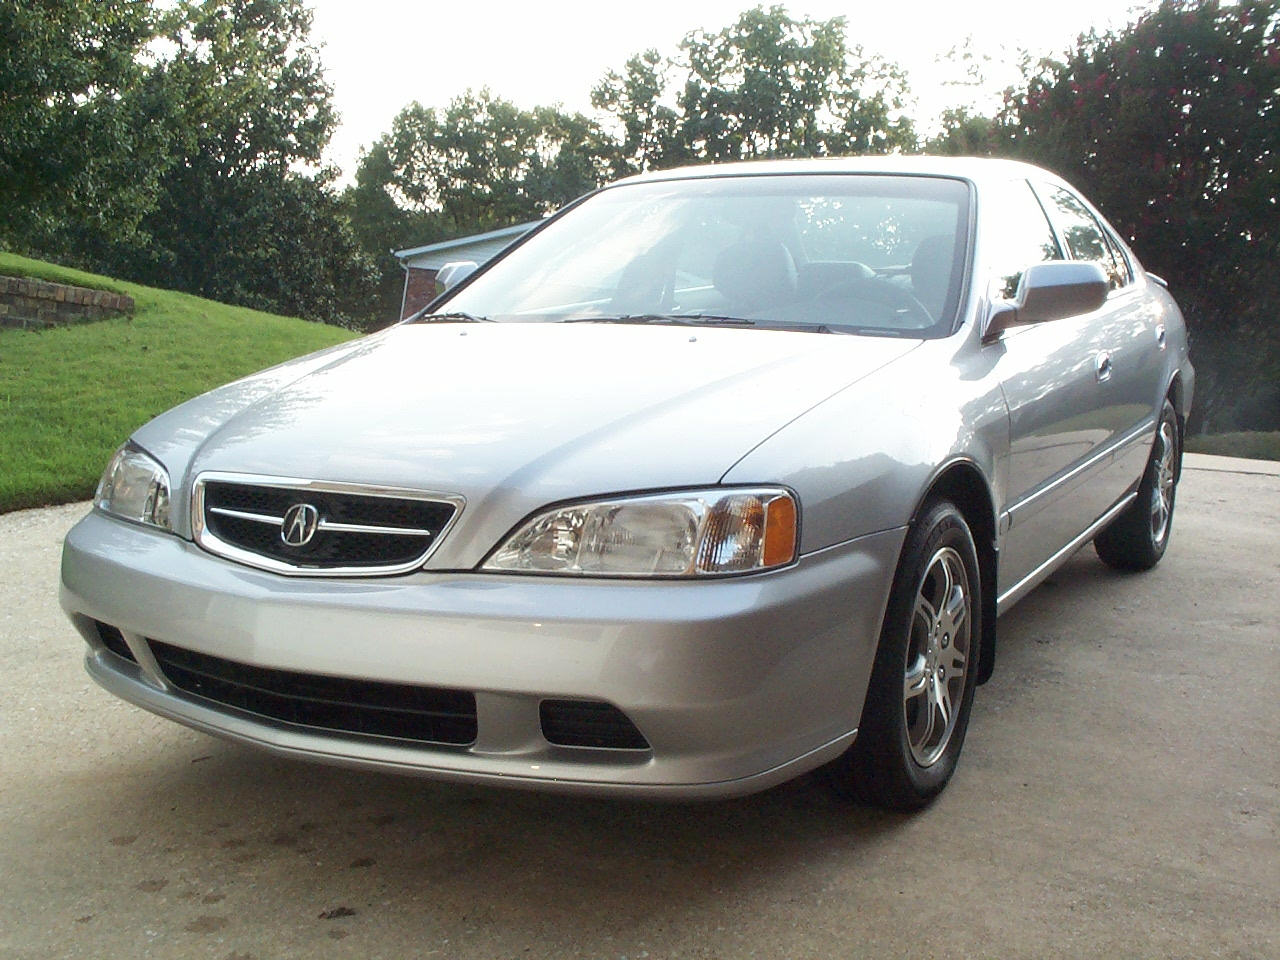 The 1999 Acura 32TL Was One Of First High Volume Cars With HIDs And Without Too Thanks To Thieves